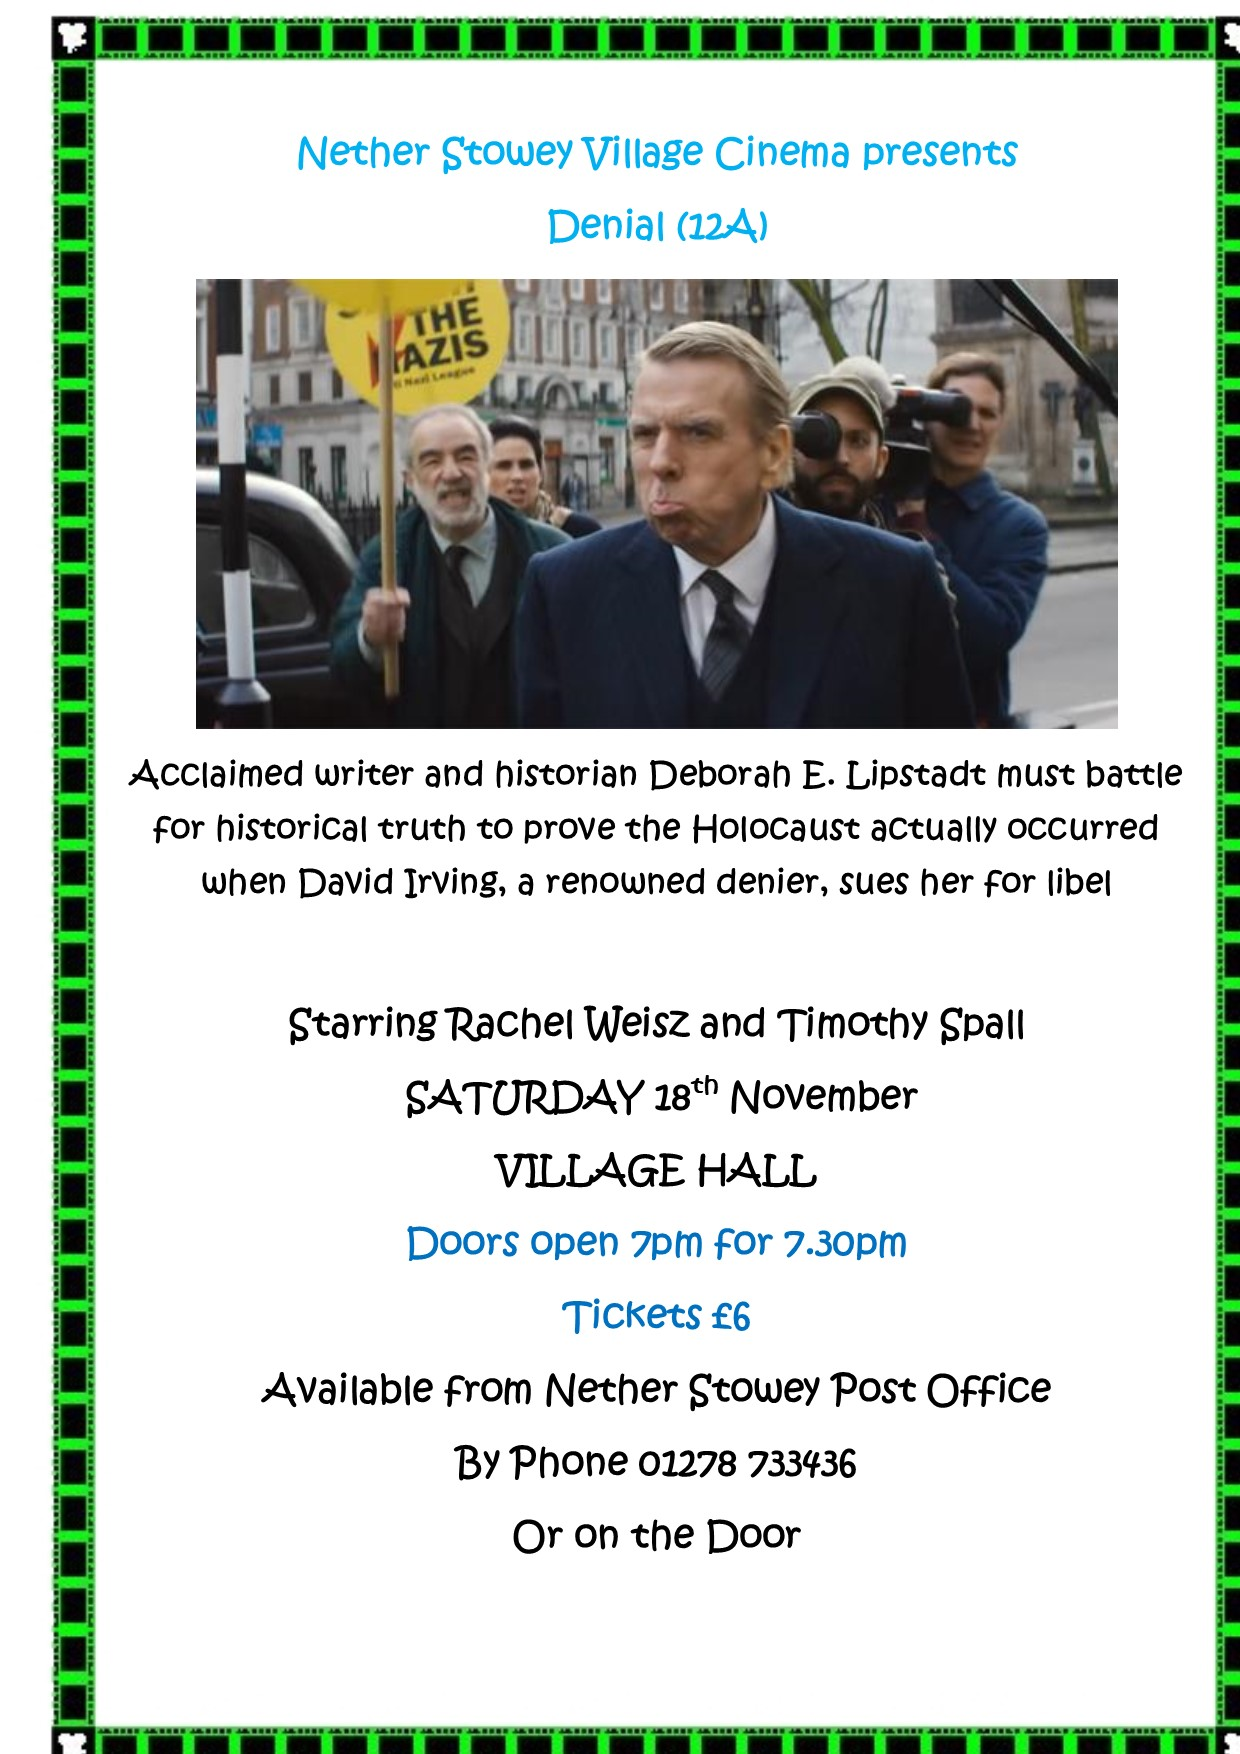 """Denial"" at Nether Stowey Village Cinema @ Nether Stowey Village Hall 